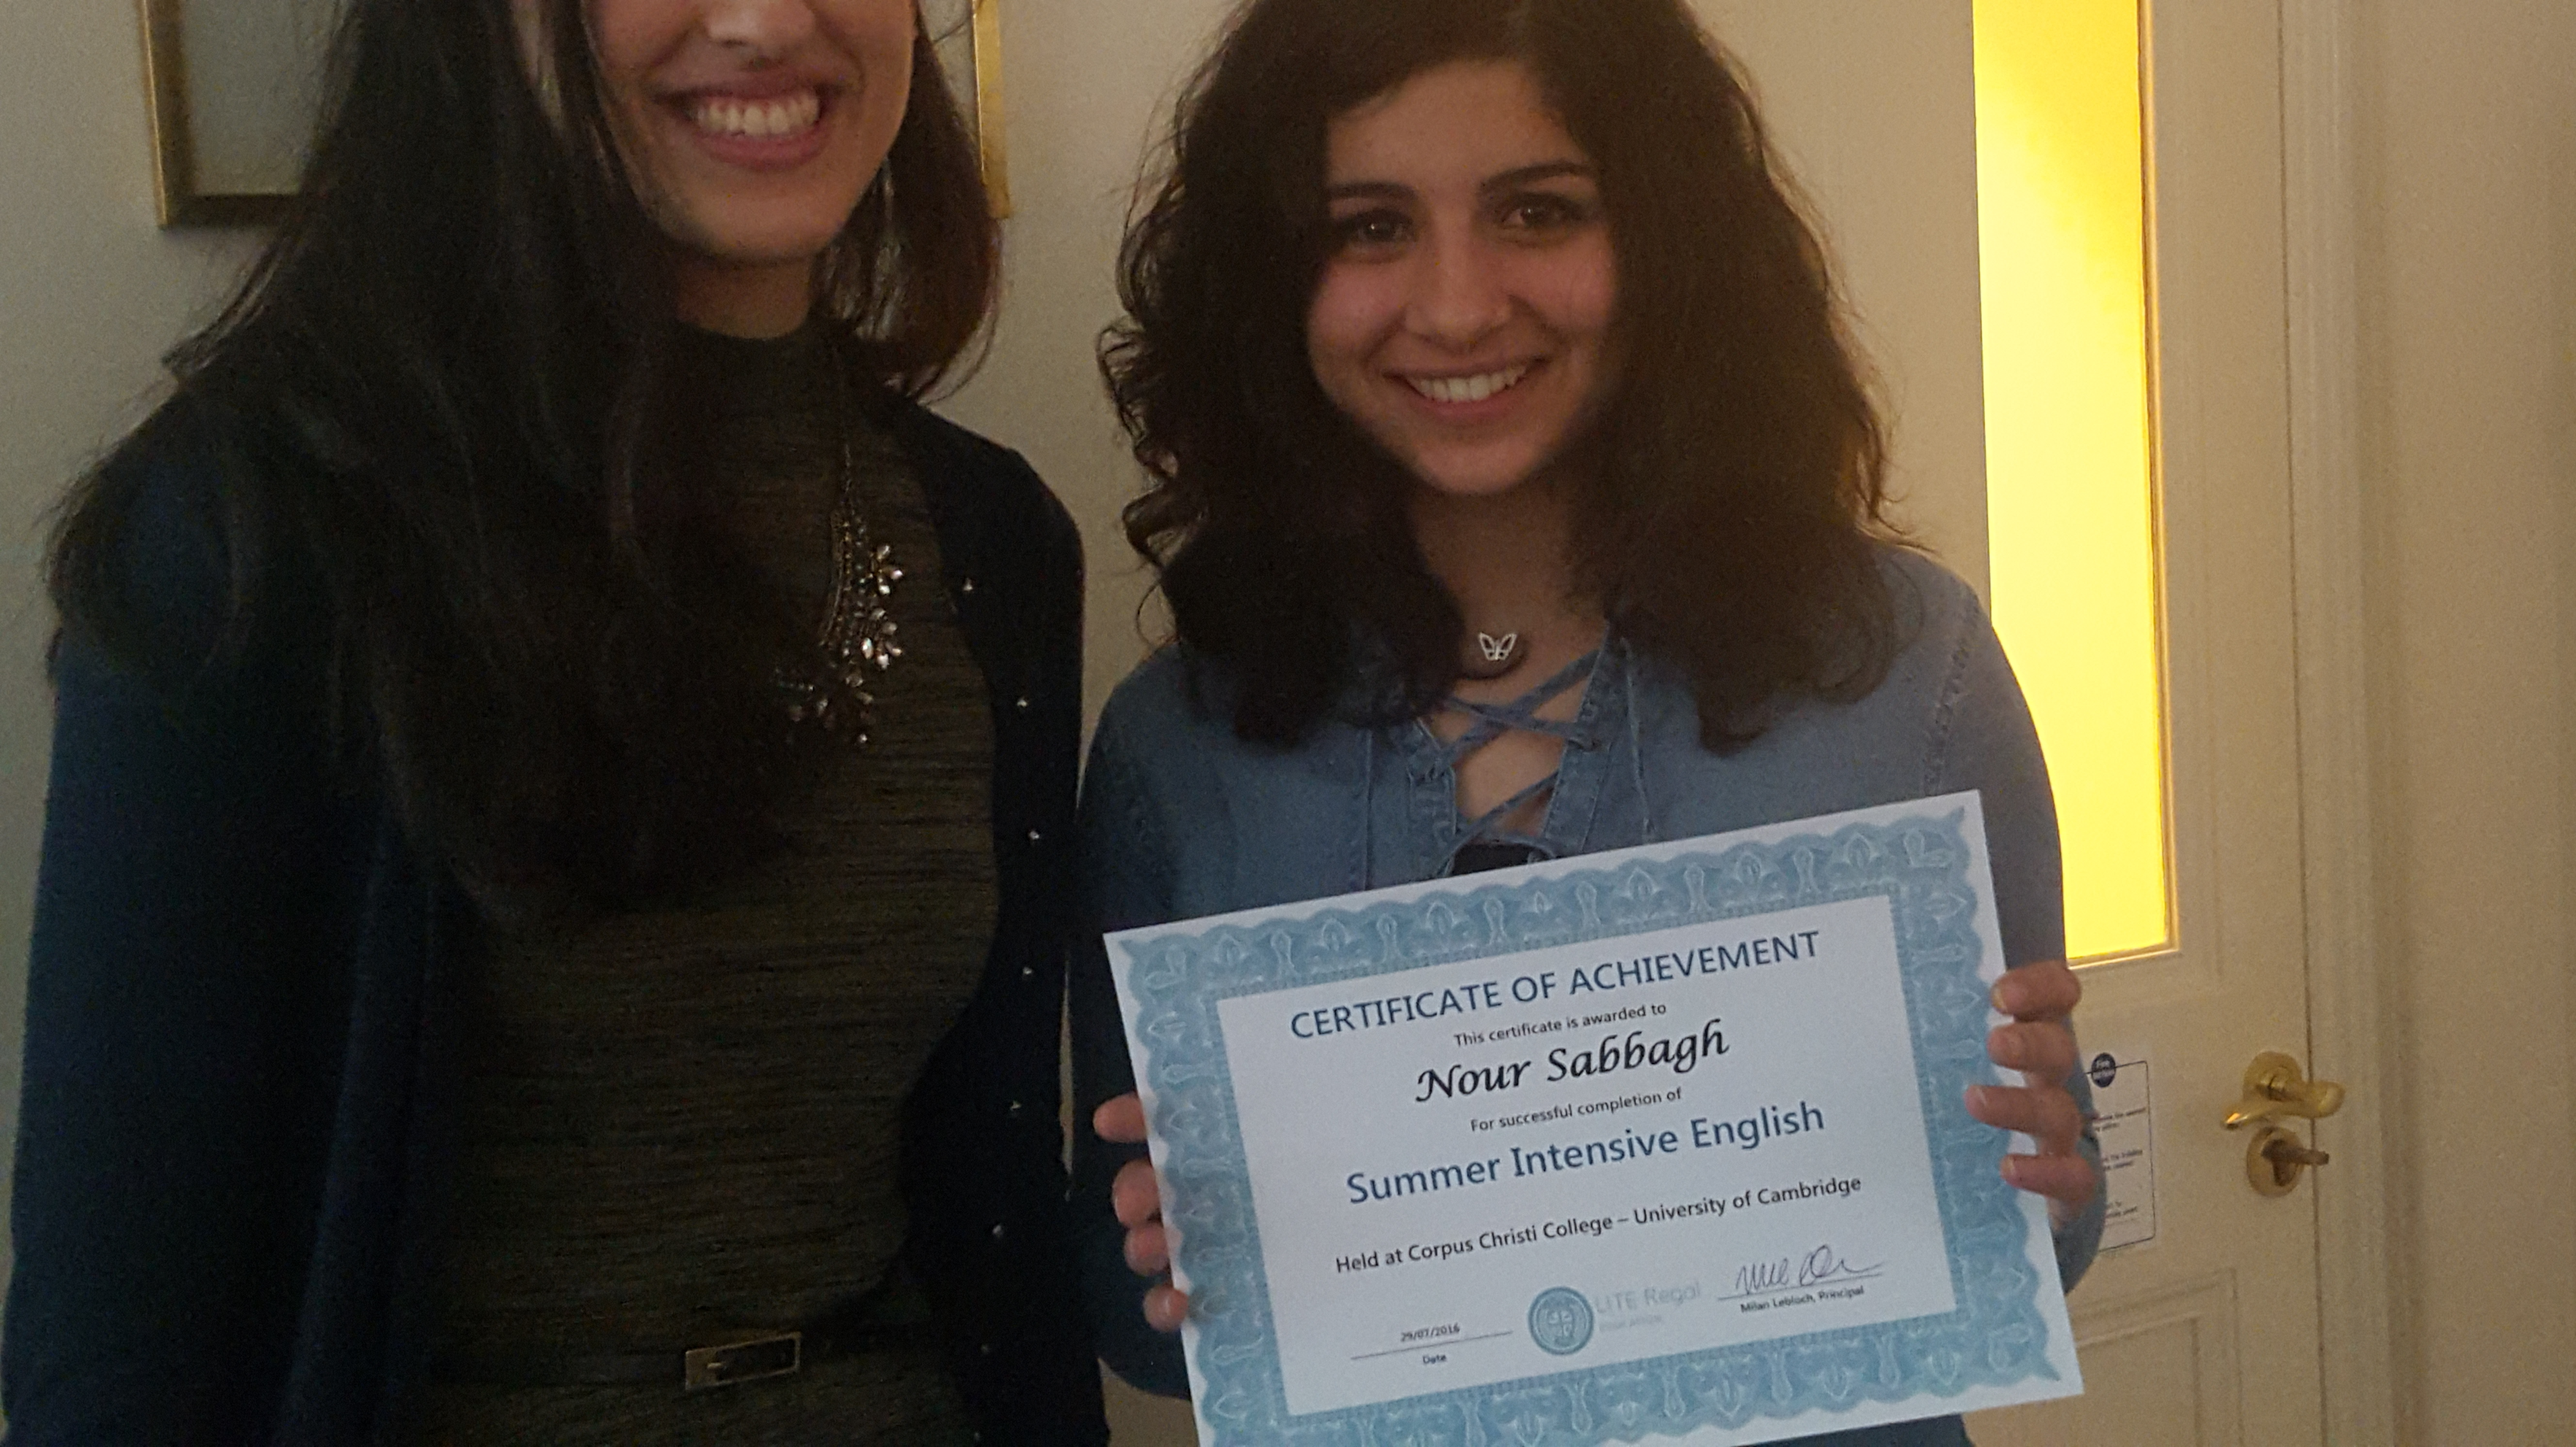 Nour Summer Intensive English Lite International